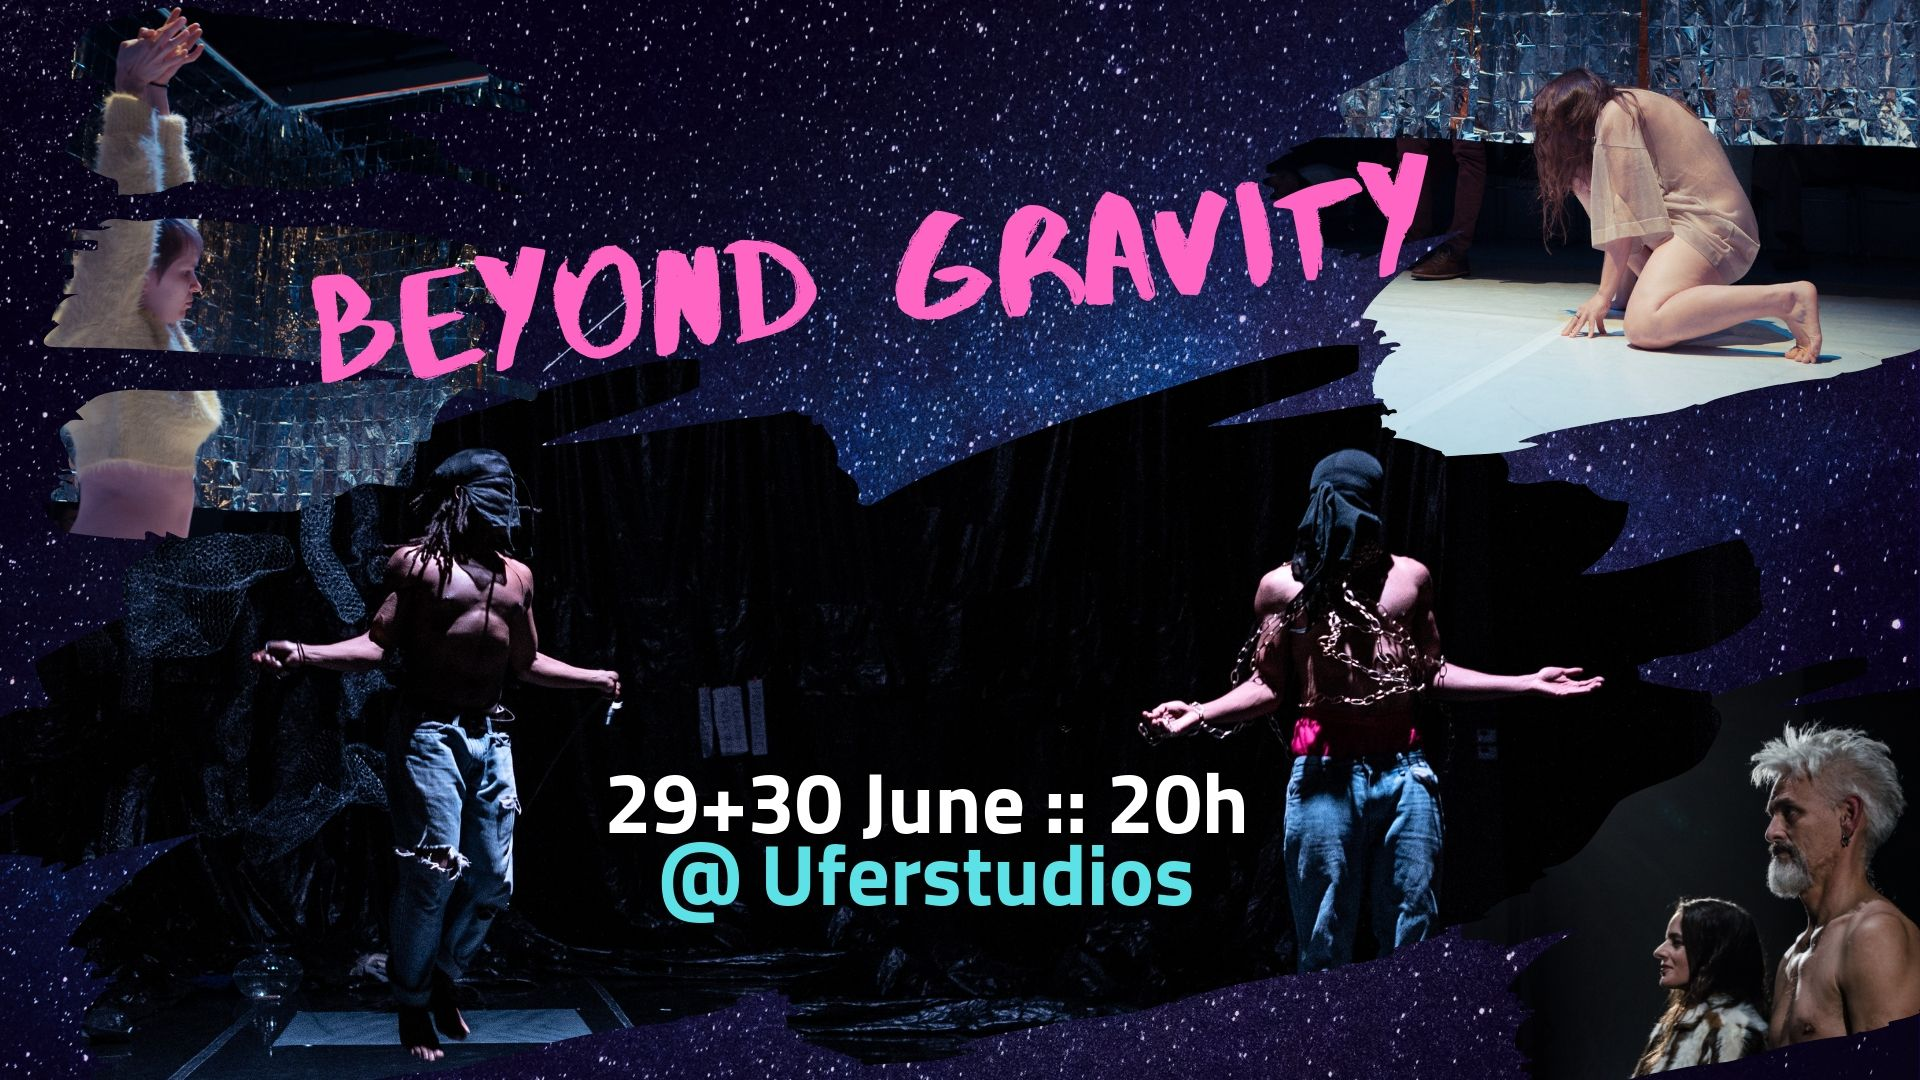 "Pink text saying ""Beyond Gravity"" and white text saying ""29-30 June, 20:00 hours."" Light blue text saying ""at Uferstudios."" The background shows a starry deep blue night sky with images of various Beyond Gravity performers in the foreground."